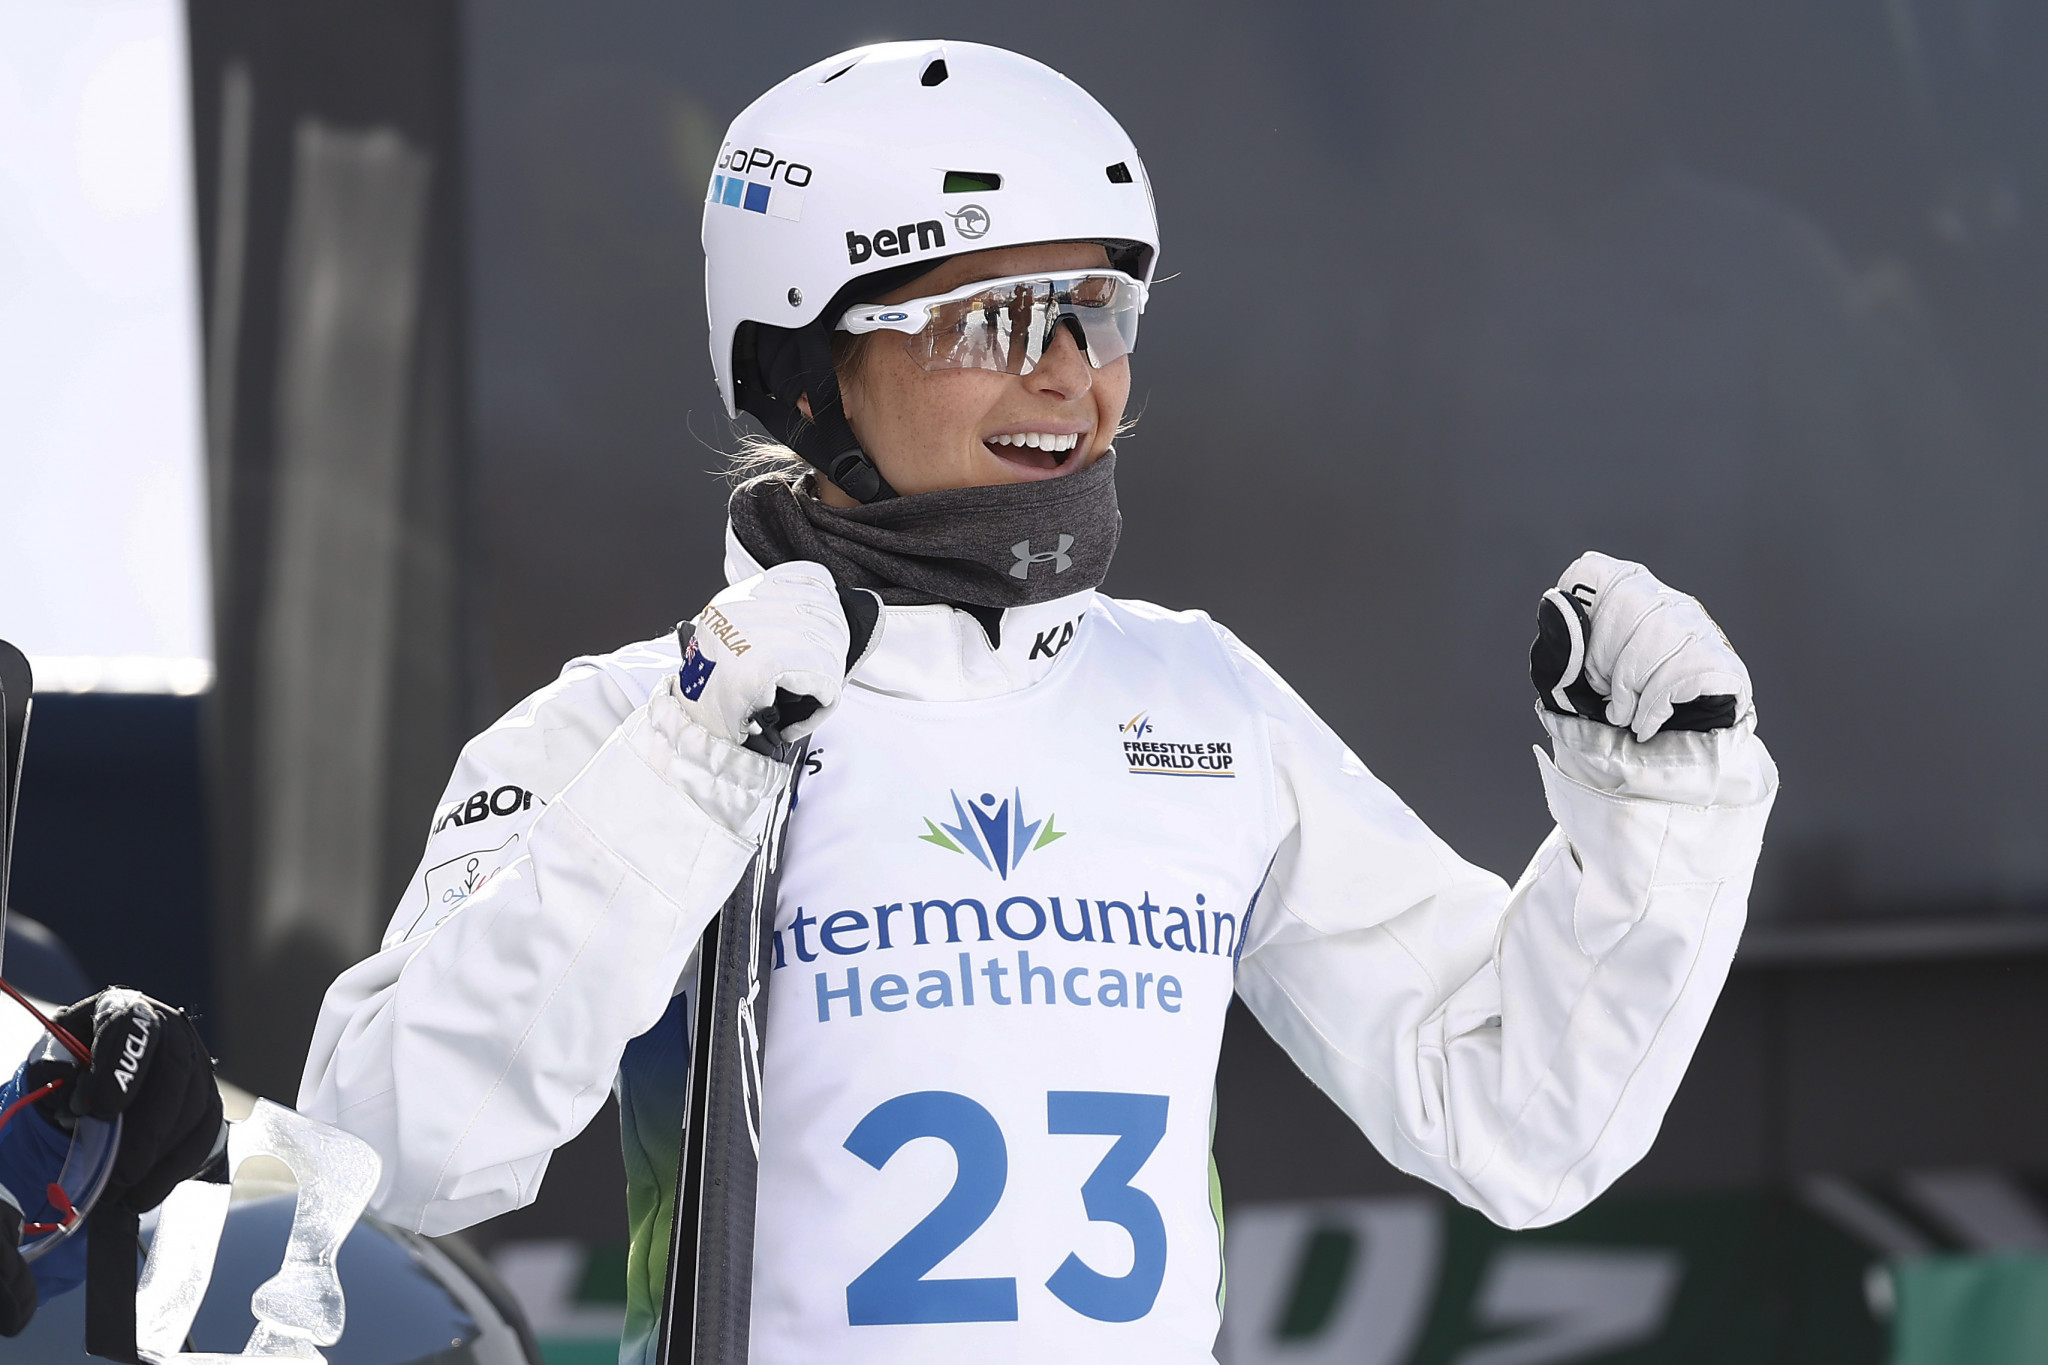 Australia's Danielle Scott marked her return to FIS Aerials World Cup action with a win in Deer Valley ©Getty Images